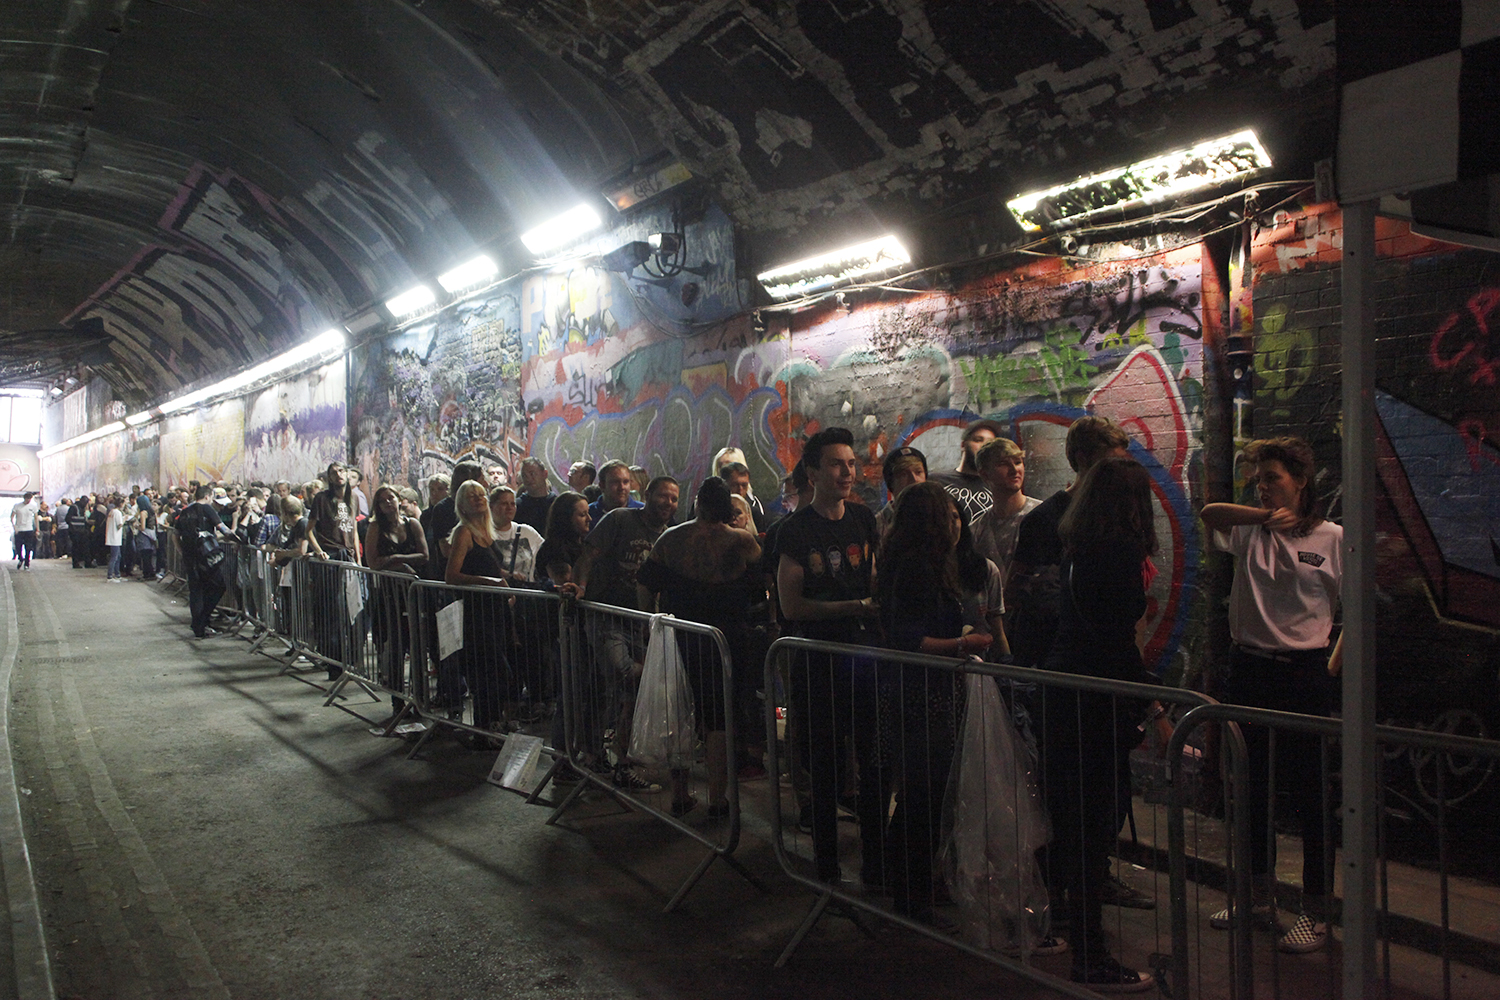 Queueing guests in Leake Street Tunnel